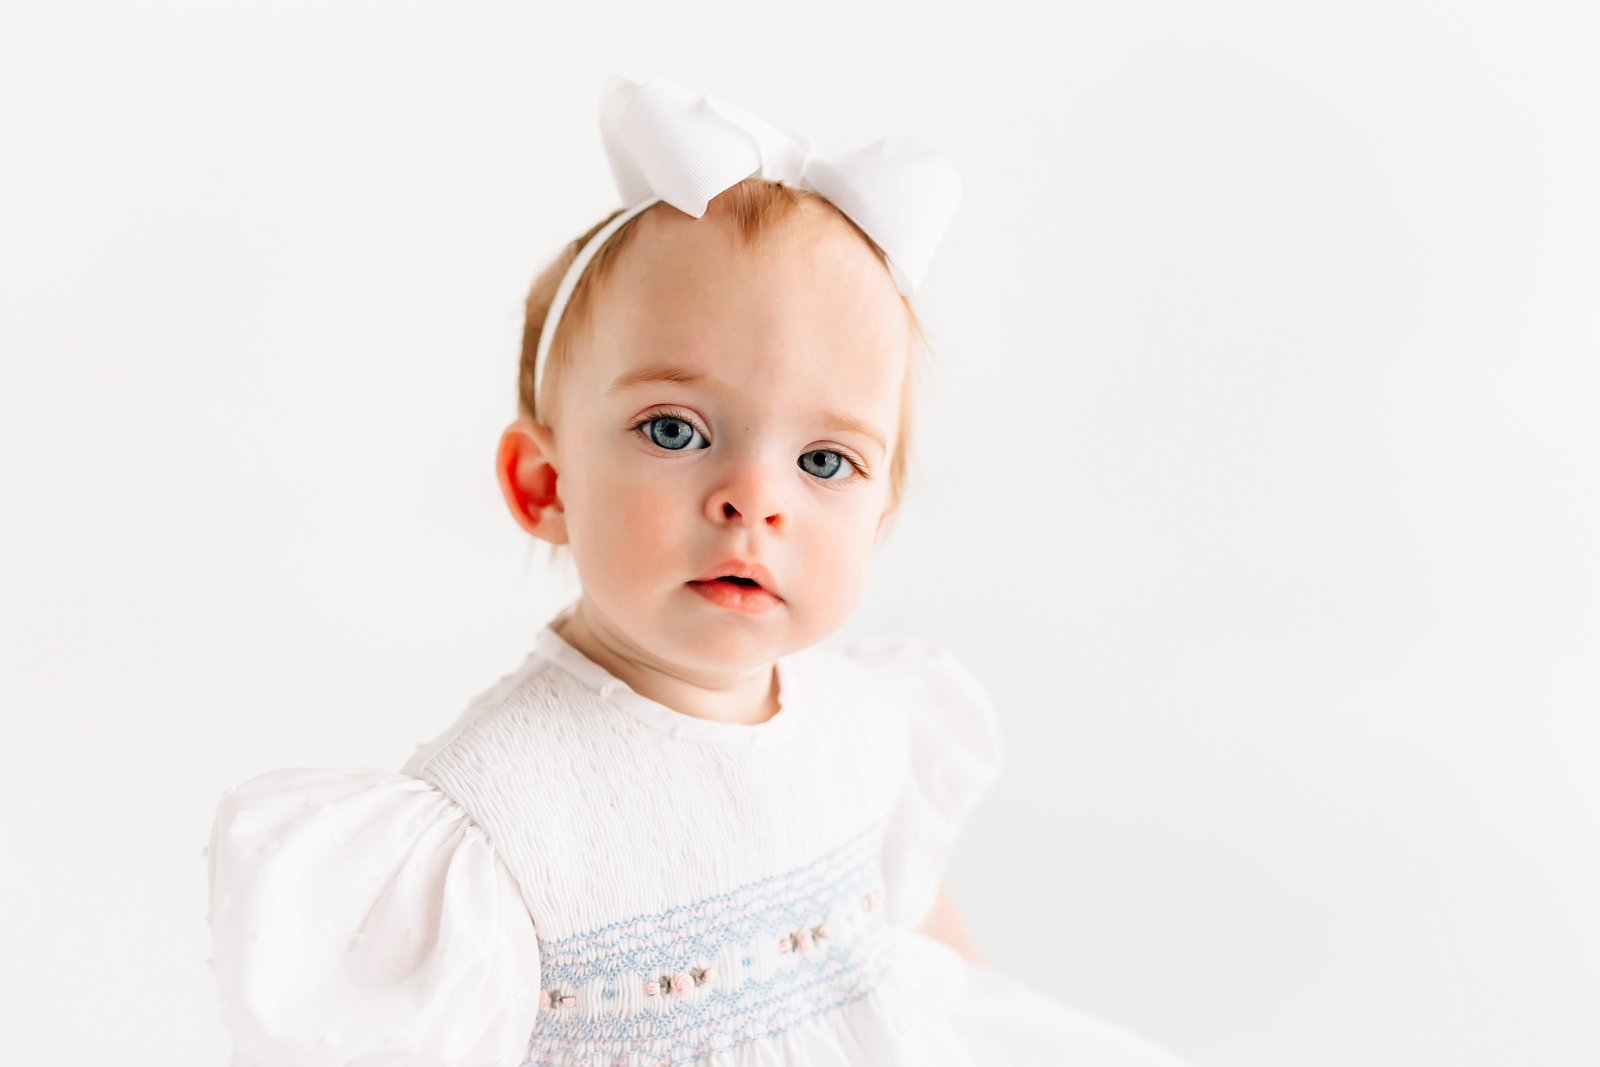 St_Louis_Baby_Photographer_Kelly_Laramore_Photography_6